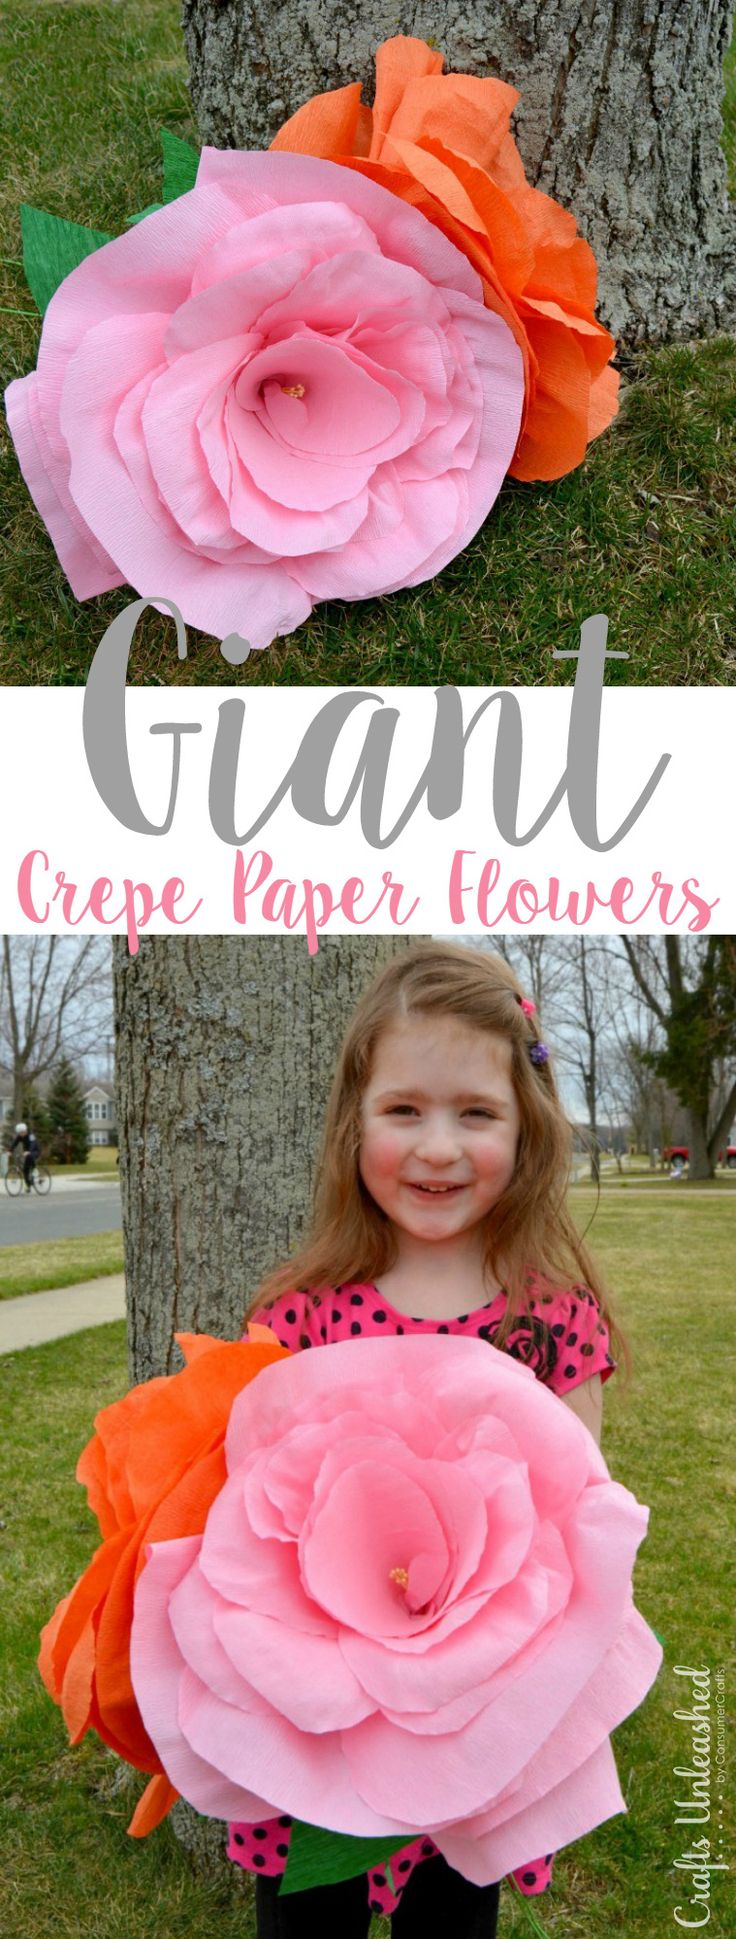 Learn how to make giant crepe paper flowers with this step by step tutorial. Perfect for weddings and party decor, photo props, unique gifts and more!